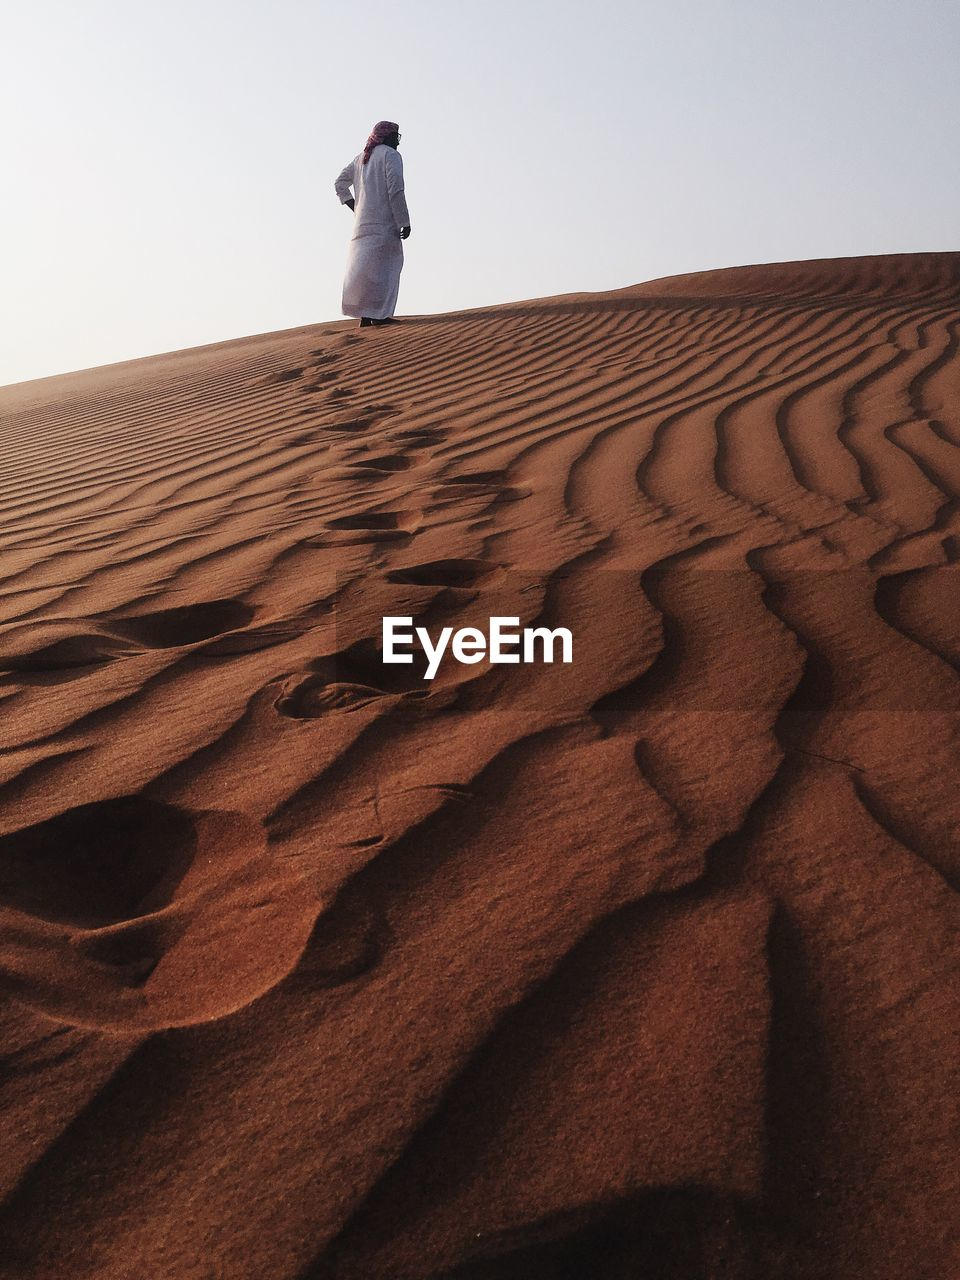 Rear view of man standing on sand at desert against sky